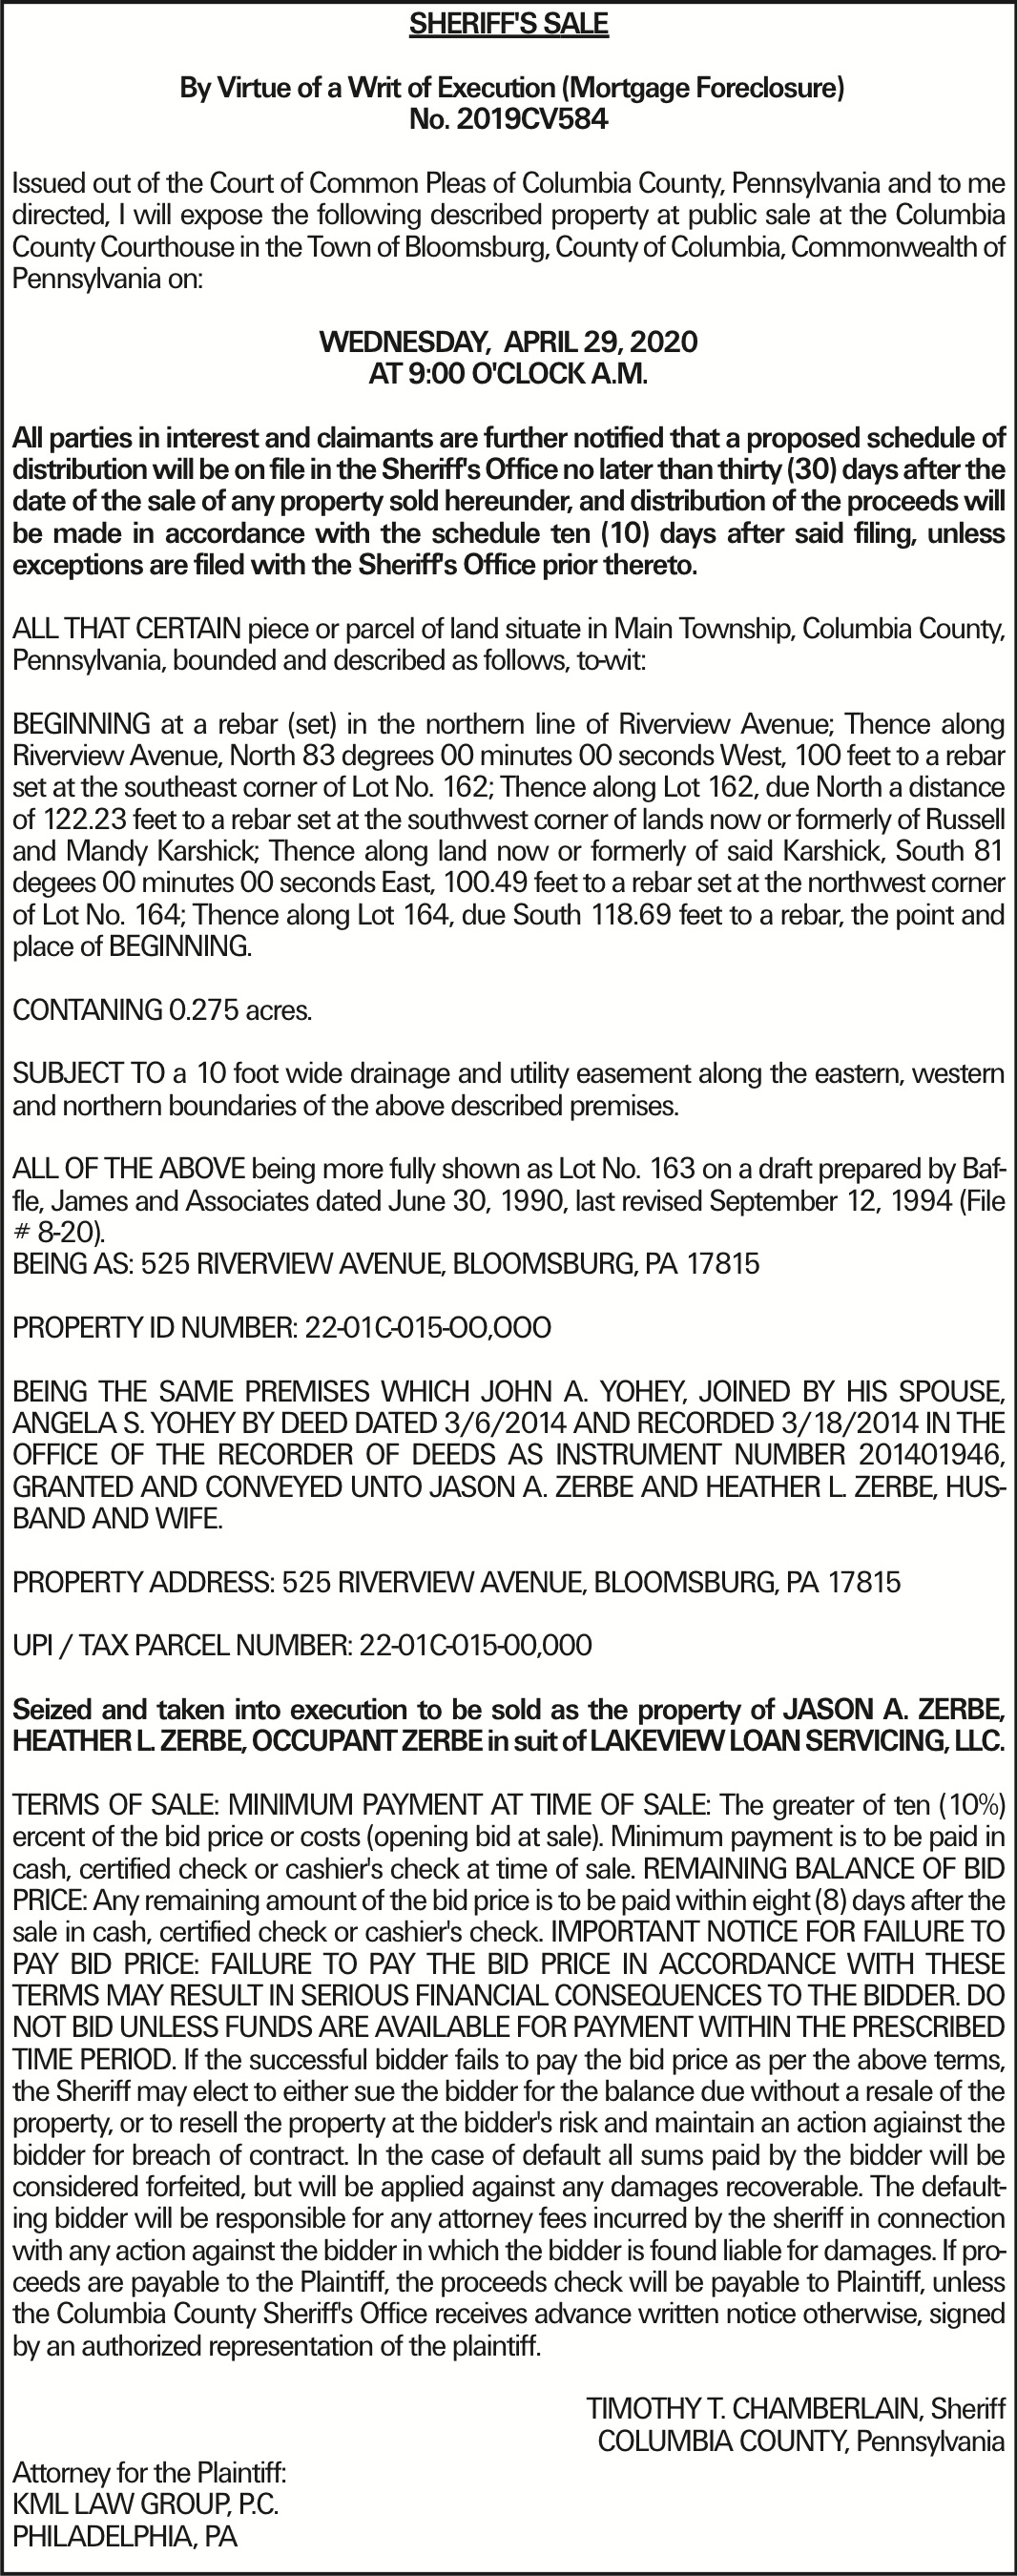 SHERIFF'S SALE By Virtue of a Writ of Execution (Mortgage Foreclosure) No. 2019CV584 Issued out of the Court of Common Pleas of Columbia County, Pennsylvania and to me directed, I will expose the following described property at public sale at the Columbia County Courthouse in the Town of Bloomsburg, County of Columbia, Commonwealth of Pennsylvania on: WEDNESDAY, APRIL 29, 2020 AT 9:00 O'CLOCK A.M. All parties in interest and claimants are further notified that a proposed schedule of distribution will be on file in the Sheriff's Office no later than thirty (30) days after the date of the sale of any property sold hereunder, and distribution of the proceeds will be made in accordance with the schedule ten (10) days after said filing, unless exceptions are filed with the Sheriff's Office prior thereto. ALL THAT CERTAIN piece or parcel of land situate in Main Township, Columbia County, Pennsylvania, bounded and described as follows, to-wit: BEGINNING at a rebar (set) in the northern line of Riverview Avenue; Thence along Riverview Avenue, North 83 degrees 00 minutes 00 seconds West, 100 feet to a rebar set at the southeast corner of Lot No. 162; Thence along Lot 162, due North a distance of 122.23 feet to a rebar set at the southwest corner of lands now or formerly of Russell and Mandy Karshick; Thence along land now or formerly of said Karshick, South 81 degees 00 minutes 00 seconds East, 100.49 feet to a rebar set at the northwest corner of Lot No. 164; Thence along Lot 164, due South 118.69 feet to a rebar, the point and place of BEGINNING. CONTANING 0.275 acres. SUBJECT TO a 10 foot wide drainage and utility easement along the eastern, western and northern boundaries of the above described premises. ALL OF THE ABOVE being more fully shown as Lot No. 163 on a draft prepared by Baffle, James and Associates dated June 30, 1990, last revised September 12, 1994 (File # 8-20). BEING AS: 525 RIVERVIEW AVENUE, BLOOMSBURG, PA 17815 PROPERTY ID NUMBER: 22-01C-015-OO,OOO BEING